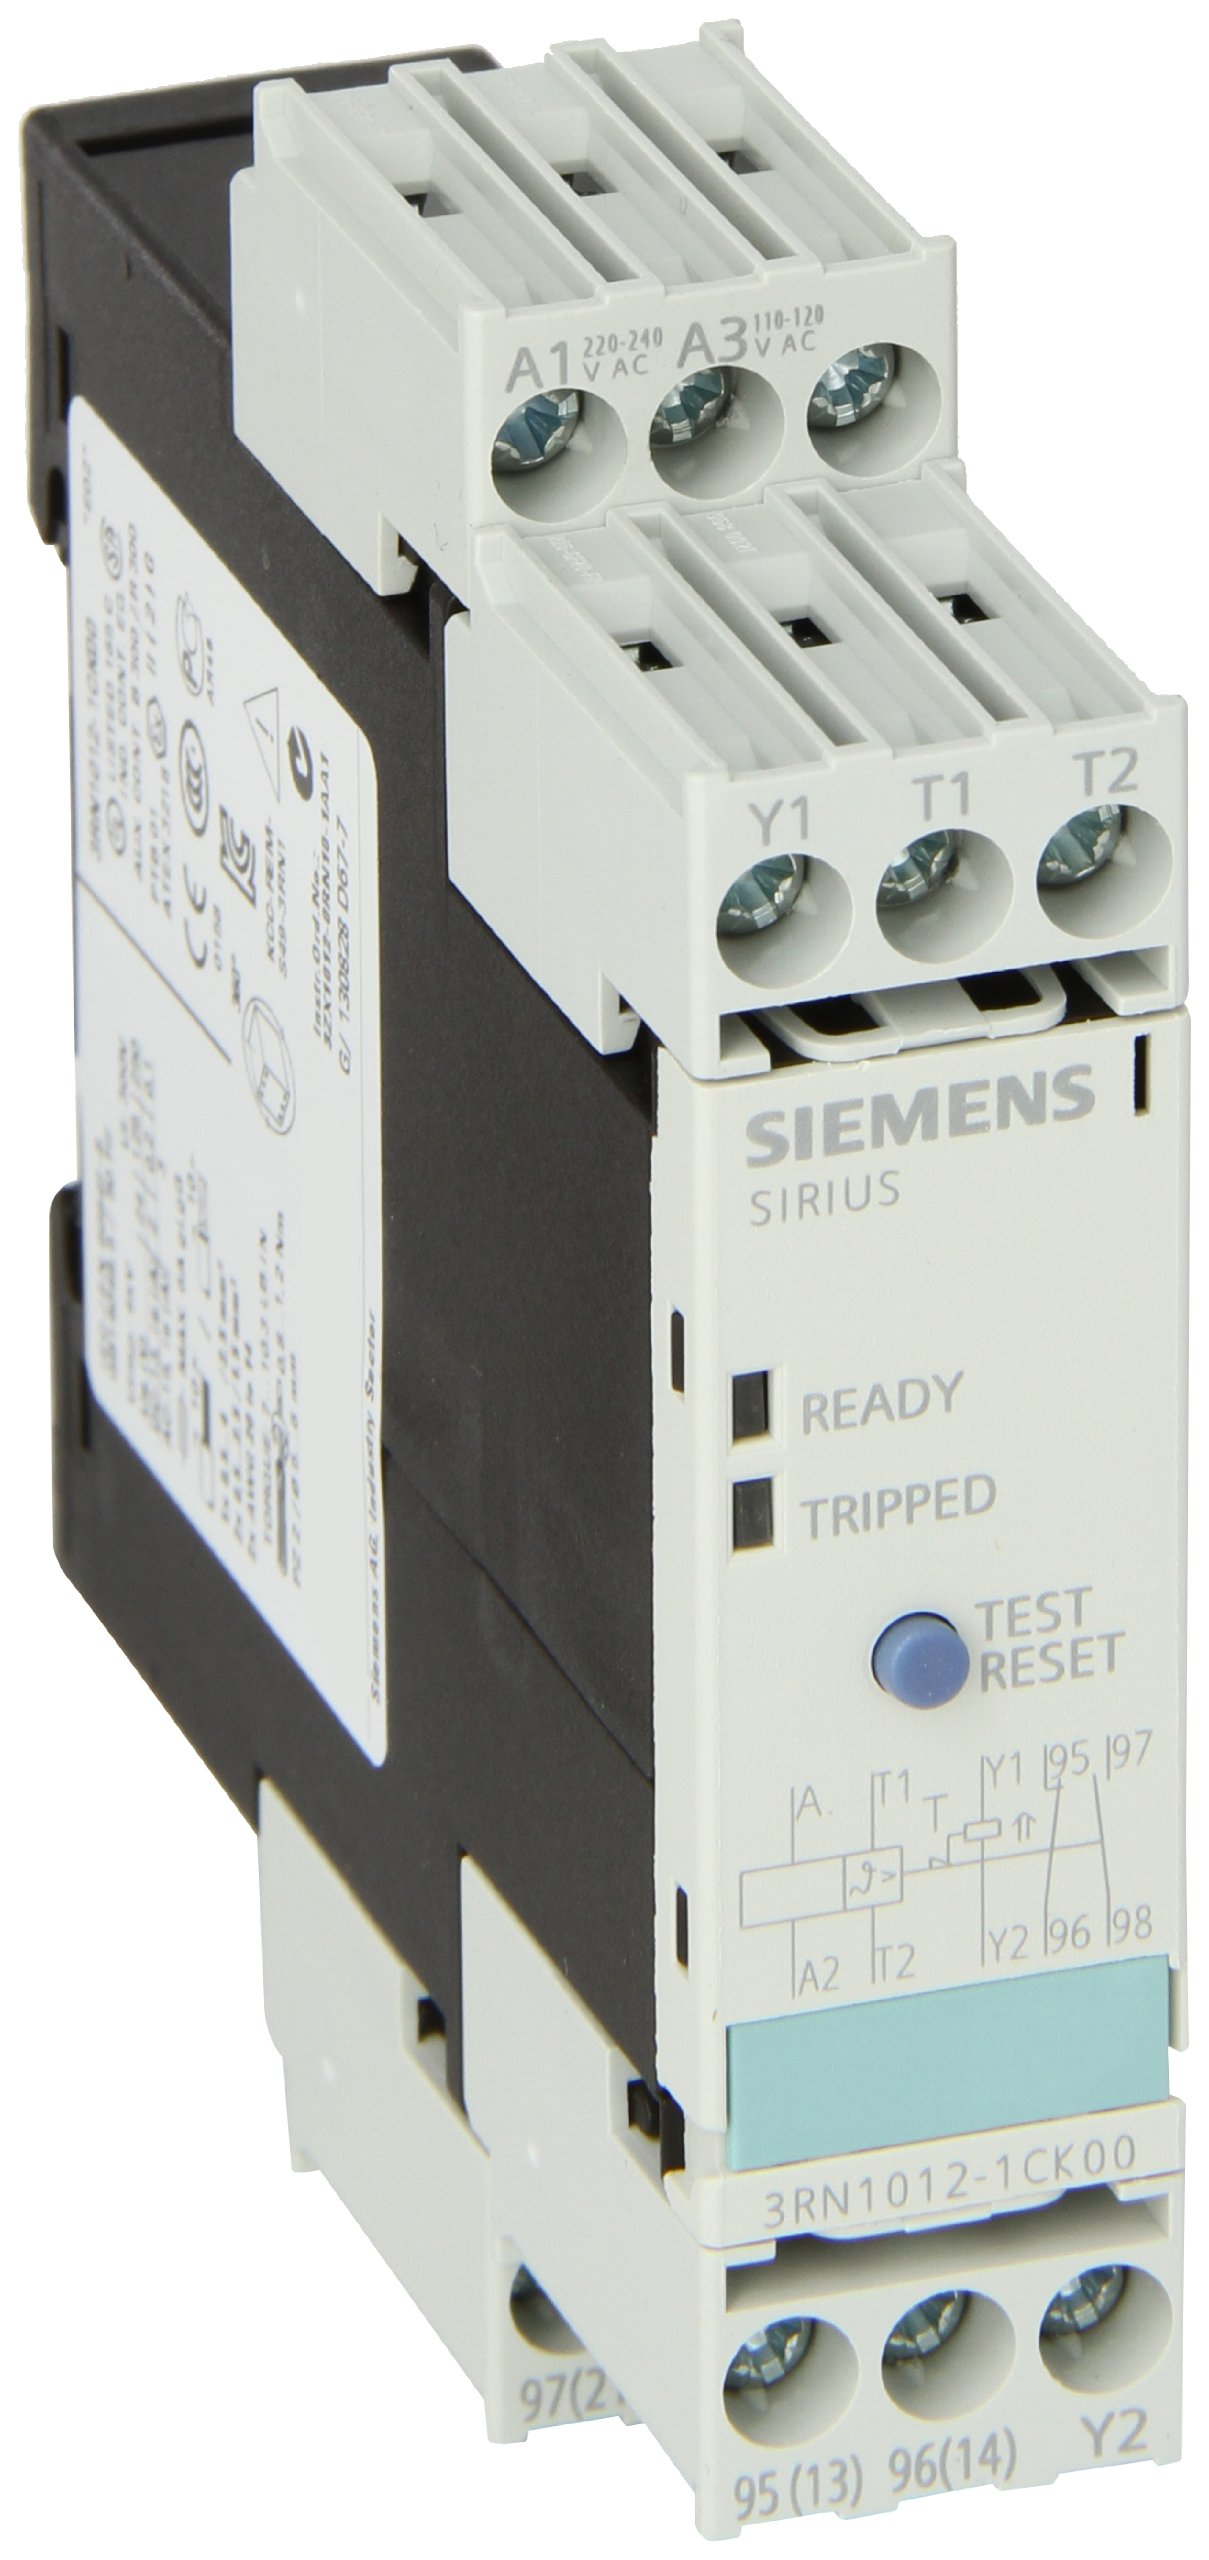 Siemens 3RN1012-1CK00 Thermistor Motor Protection Relay, Screw Terminal, Standard Evaluation Units, 2 LEDs, 22.5mm Width, Manual/Auto/Remote Reset, 1 N + 1 NC Contacts, 110/230VAC Control Supply Voltage